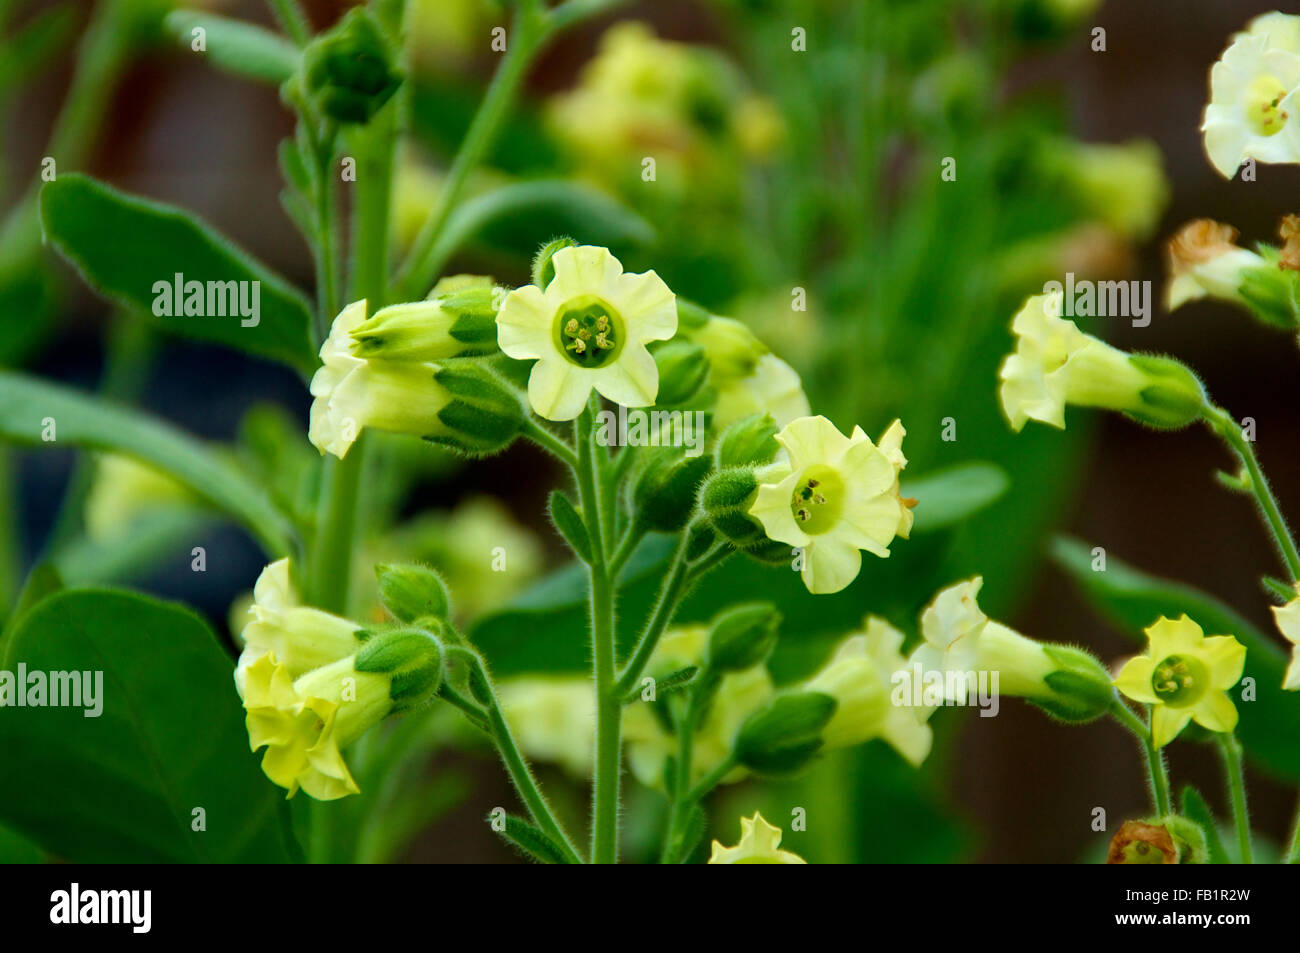 Small yellow flowers of the sacred aztec tobacco plant in bloom small yellow flowers of the sacred aztec tobacco plant in bloom ncotiana rustica also known as aztec and brazilian tobacco mightylinksfo